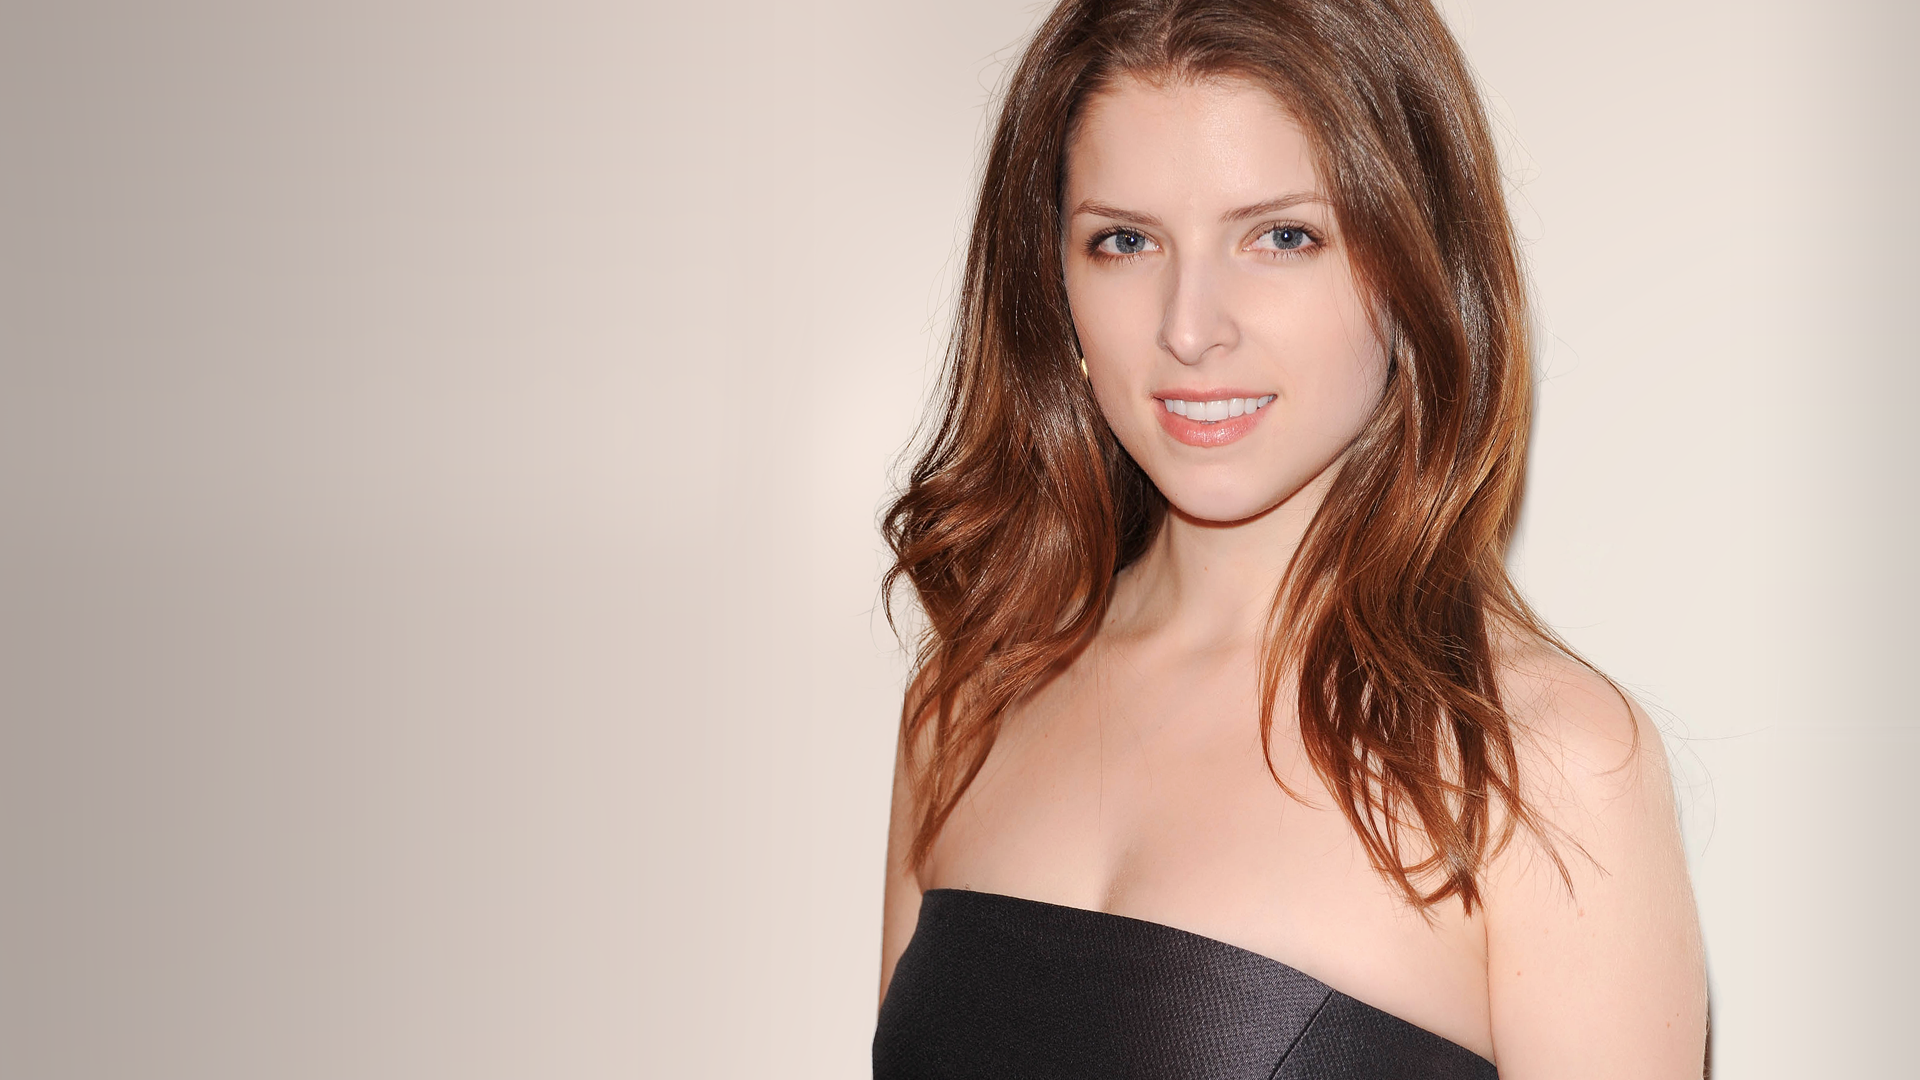 Anna-Kendrick-1920x1080-wallpaper-wp3602598